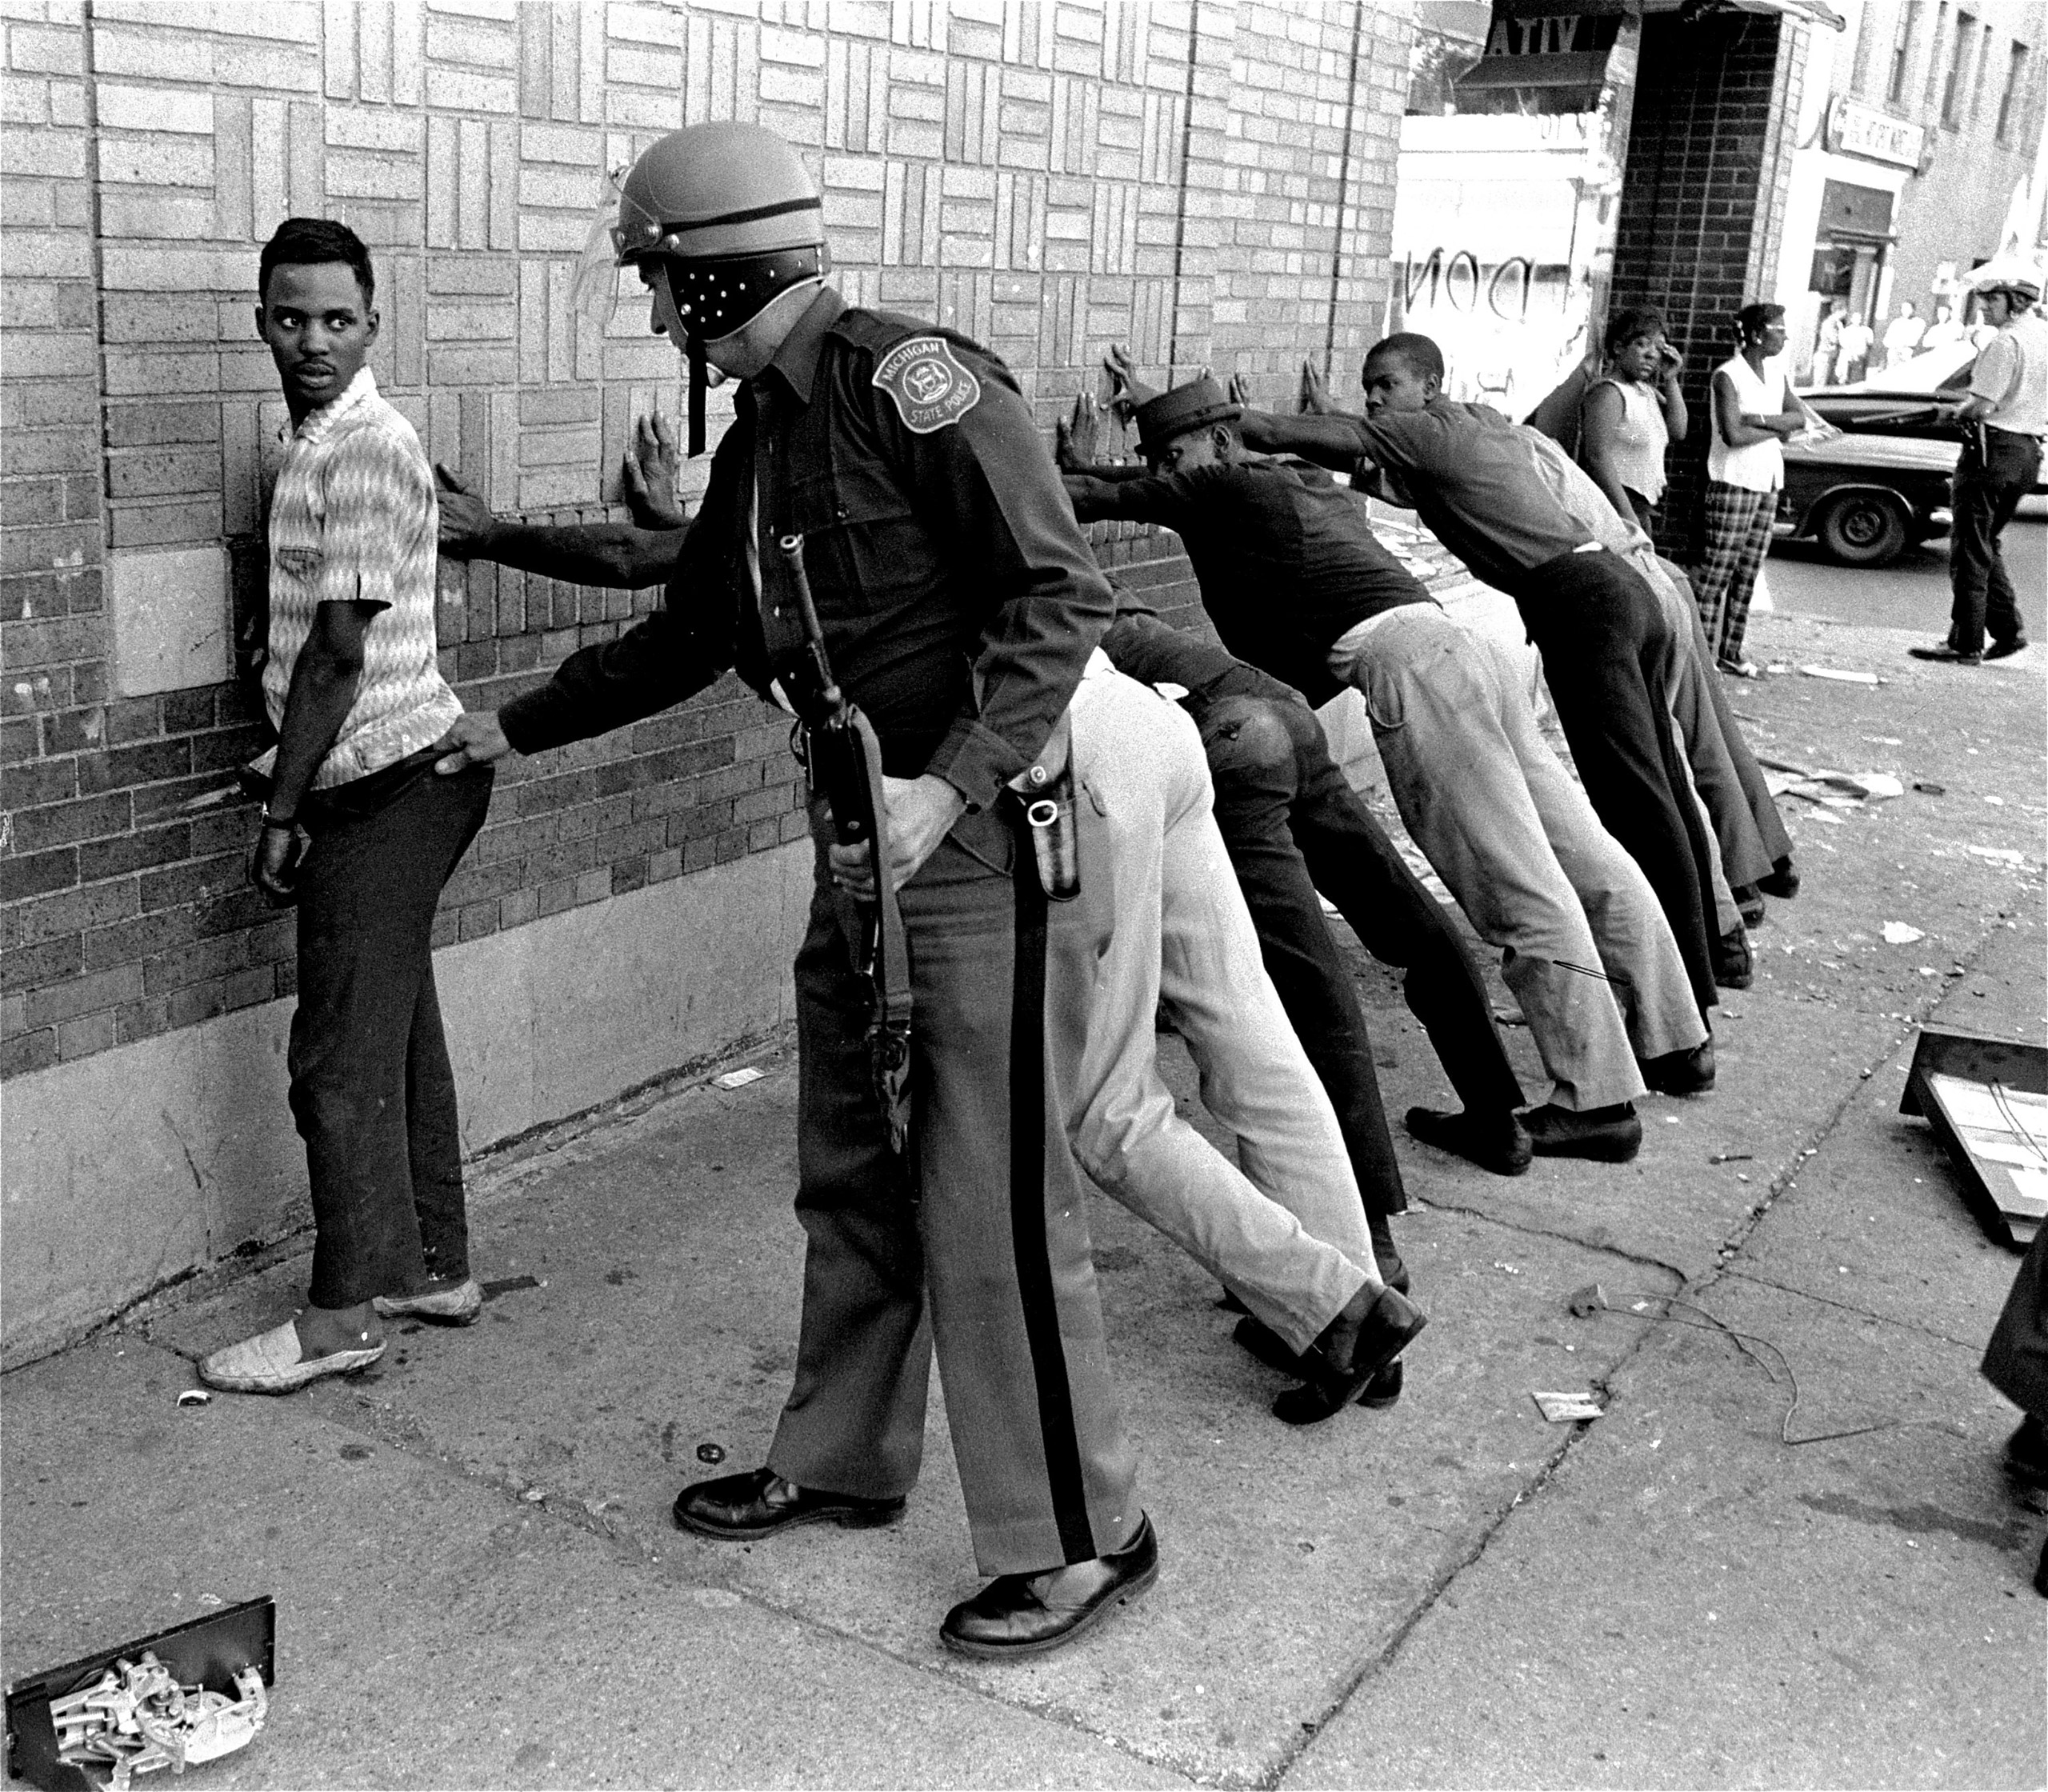 A Michigan State policeman searches a youth on Detroit's 12th Street, July 24, 1967, where looting was still in progress.